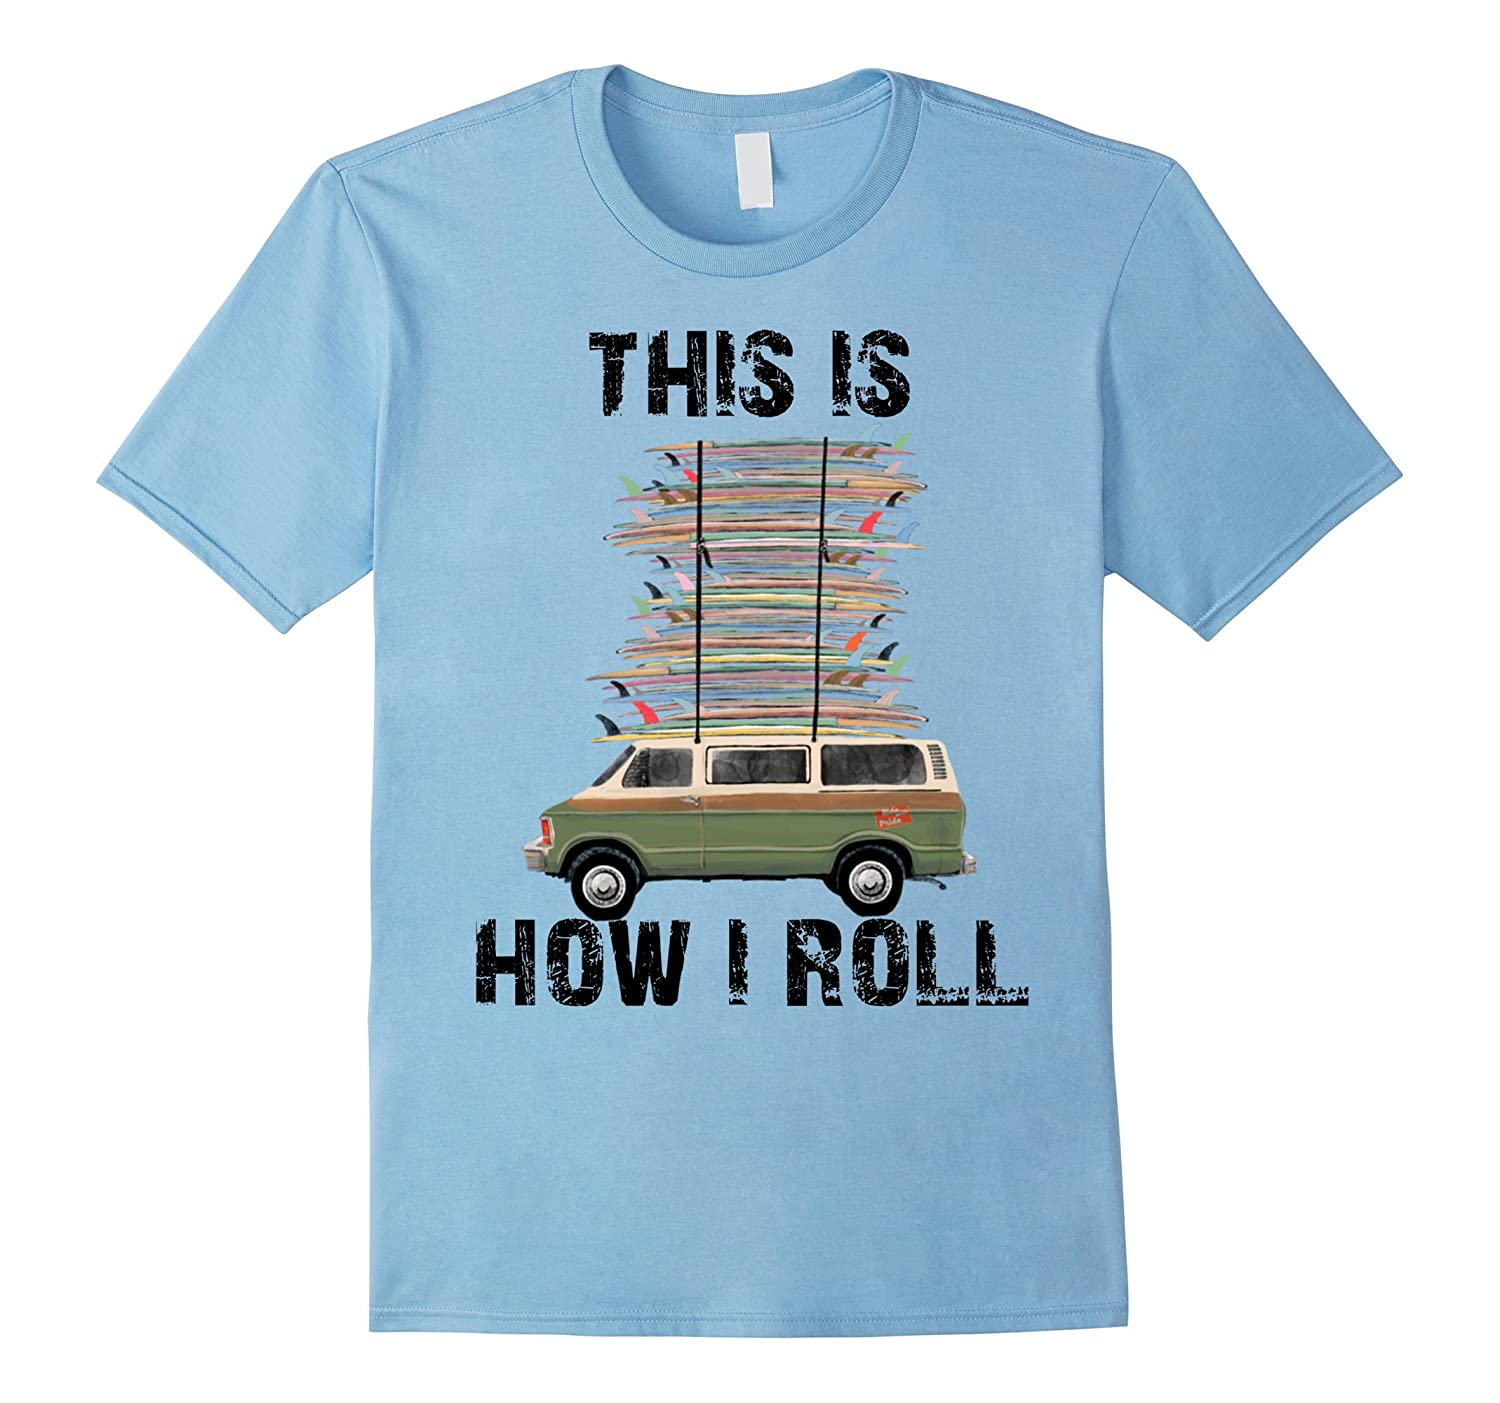 FUNNY SAYING TSHIRT FOR Surf Bus THIS IS HOW I ROLL T SHIRT